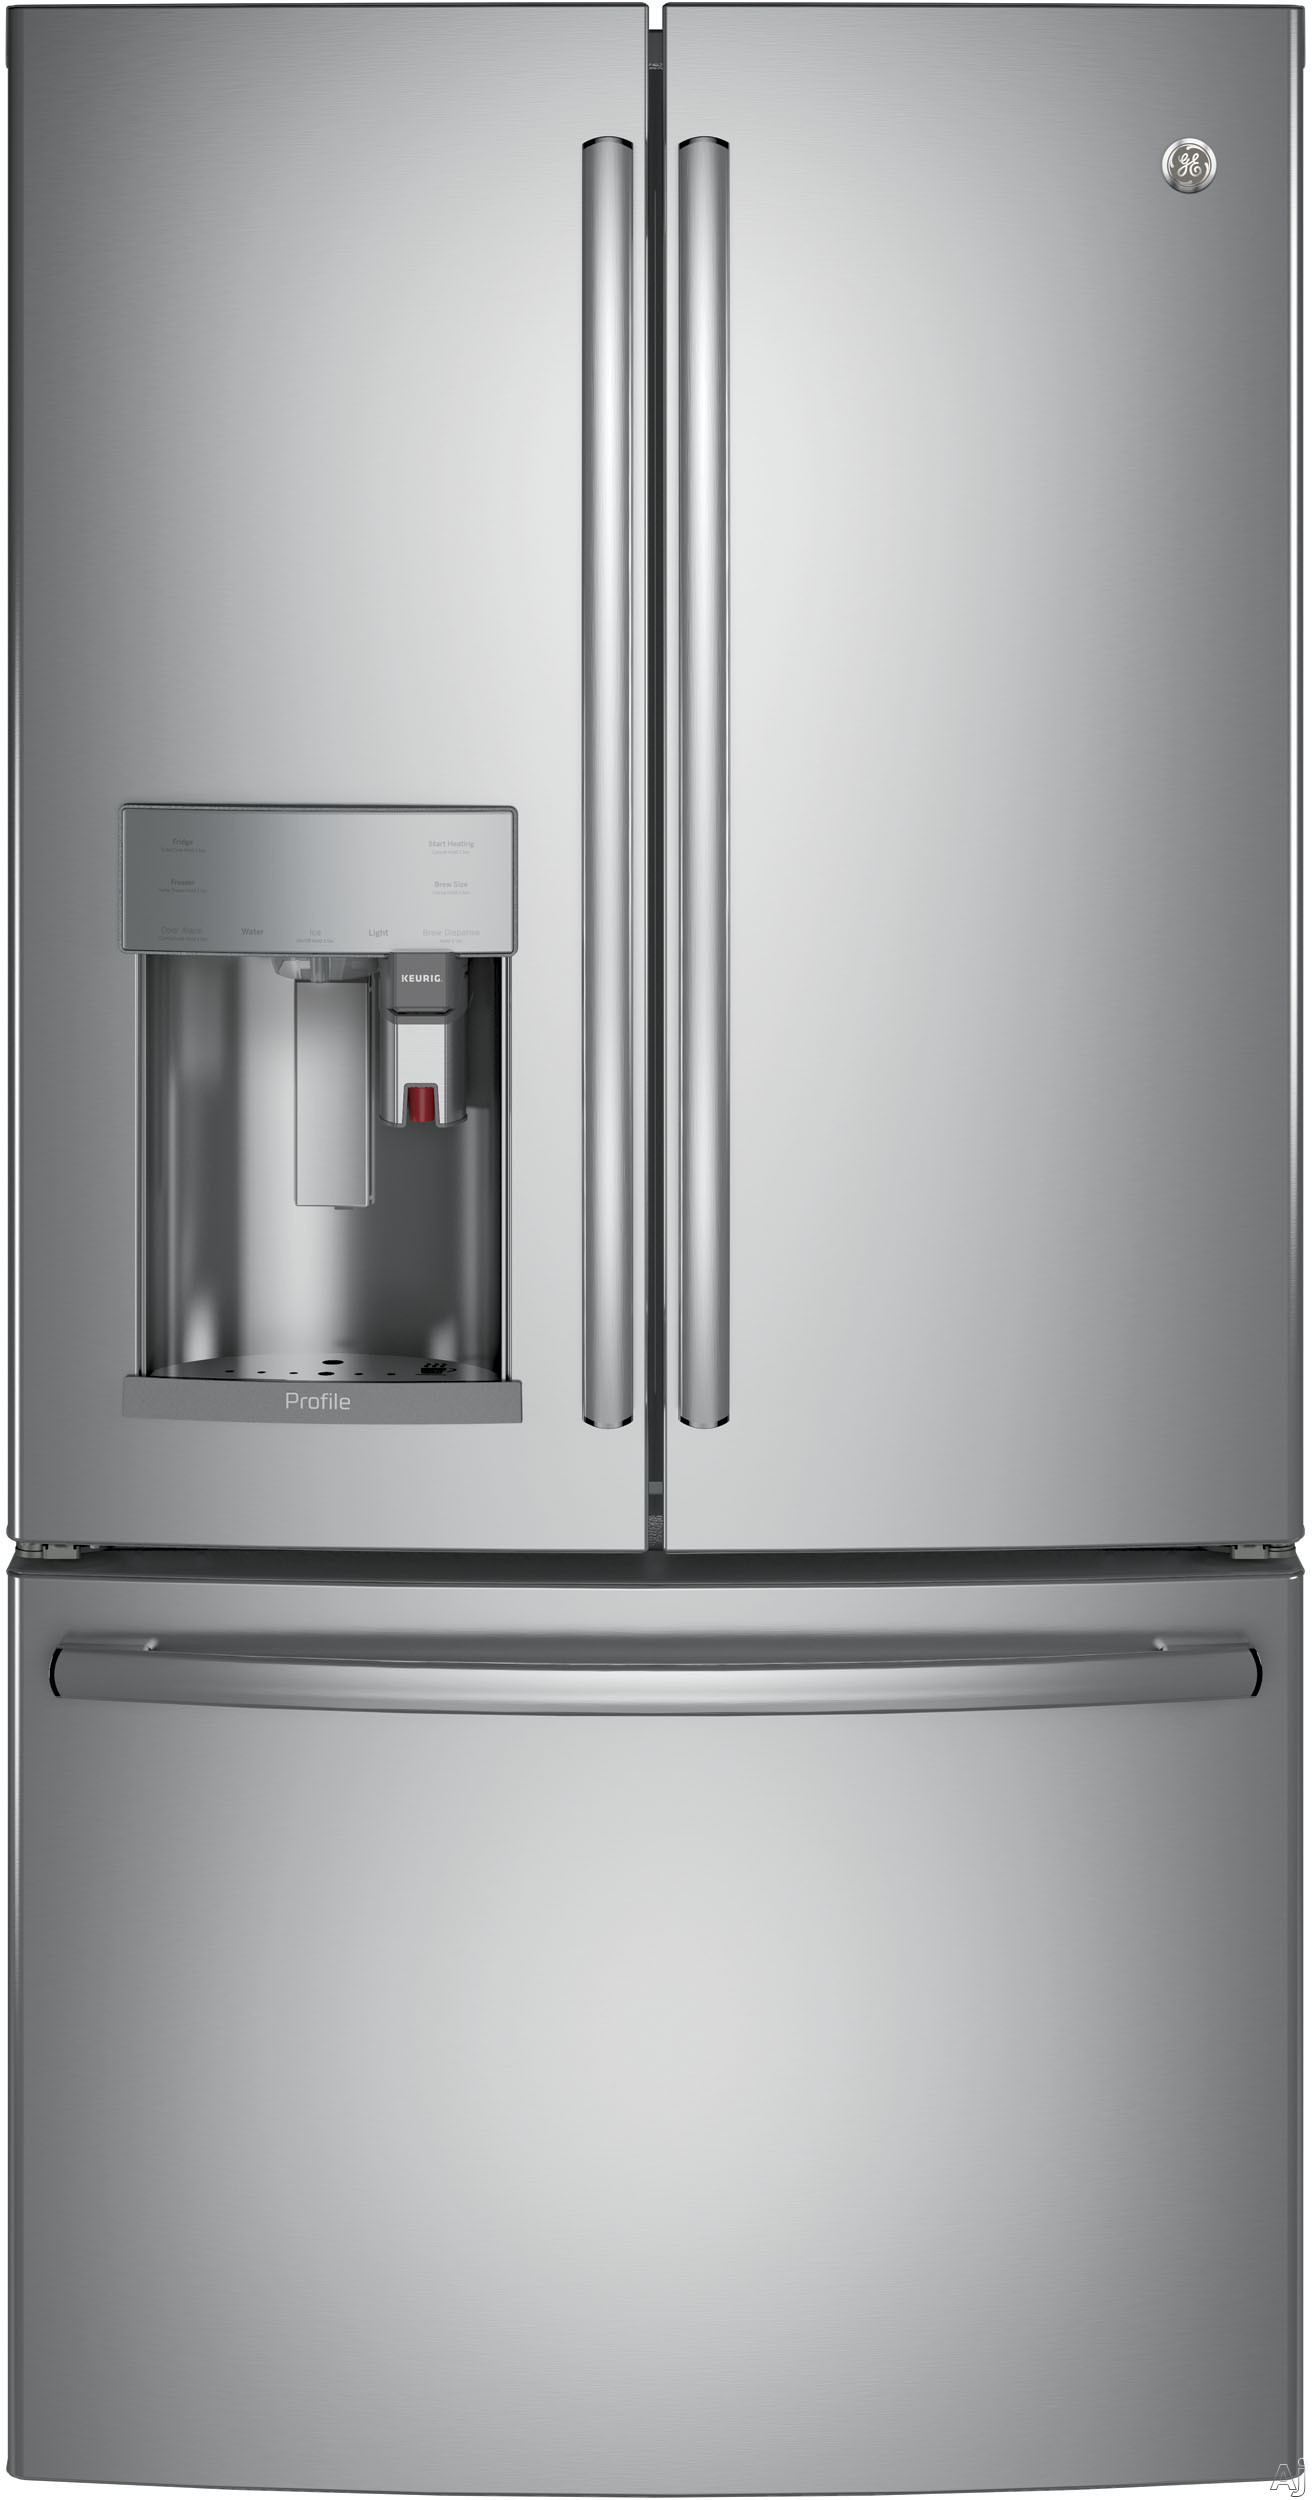 GE Profile PFE28PSKSS 36 Inch French Door Refrigerator with Keurig® K-Cup®, WiFi Connect, Hot Water Dispenser, TwinChill™, Temperature Controlled Drawer, Quick Space Shelf, Drop Down Tray,